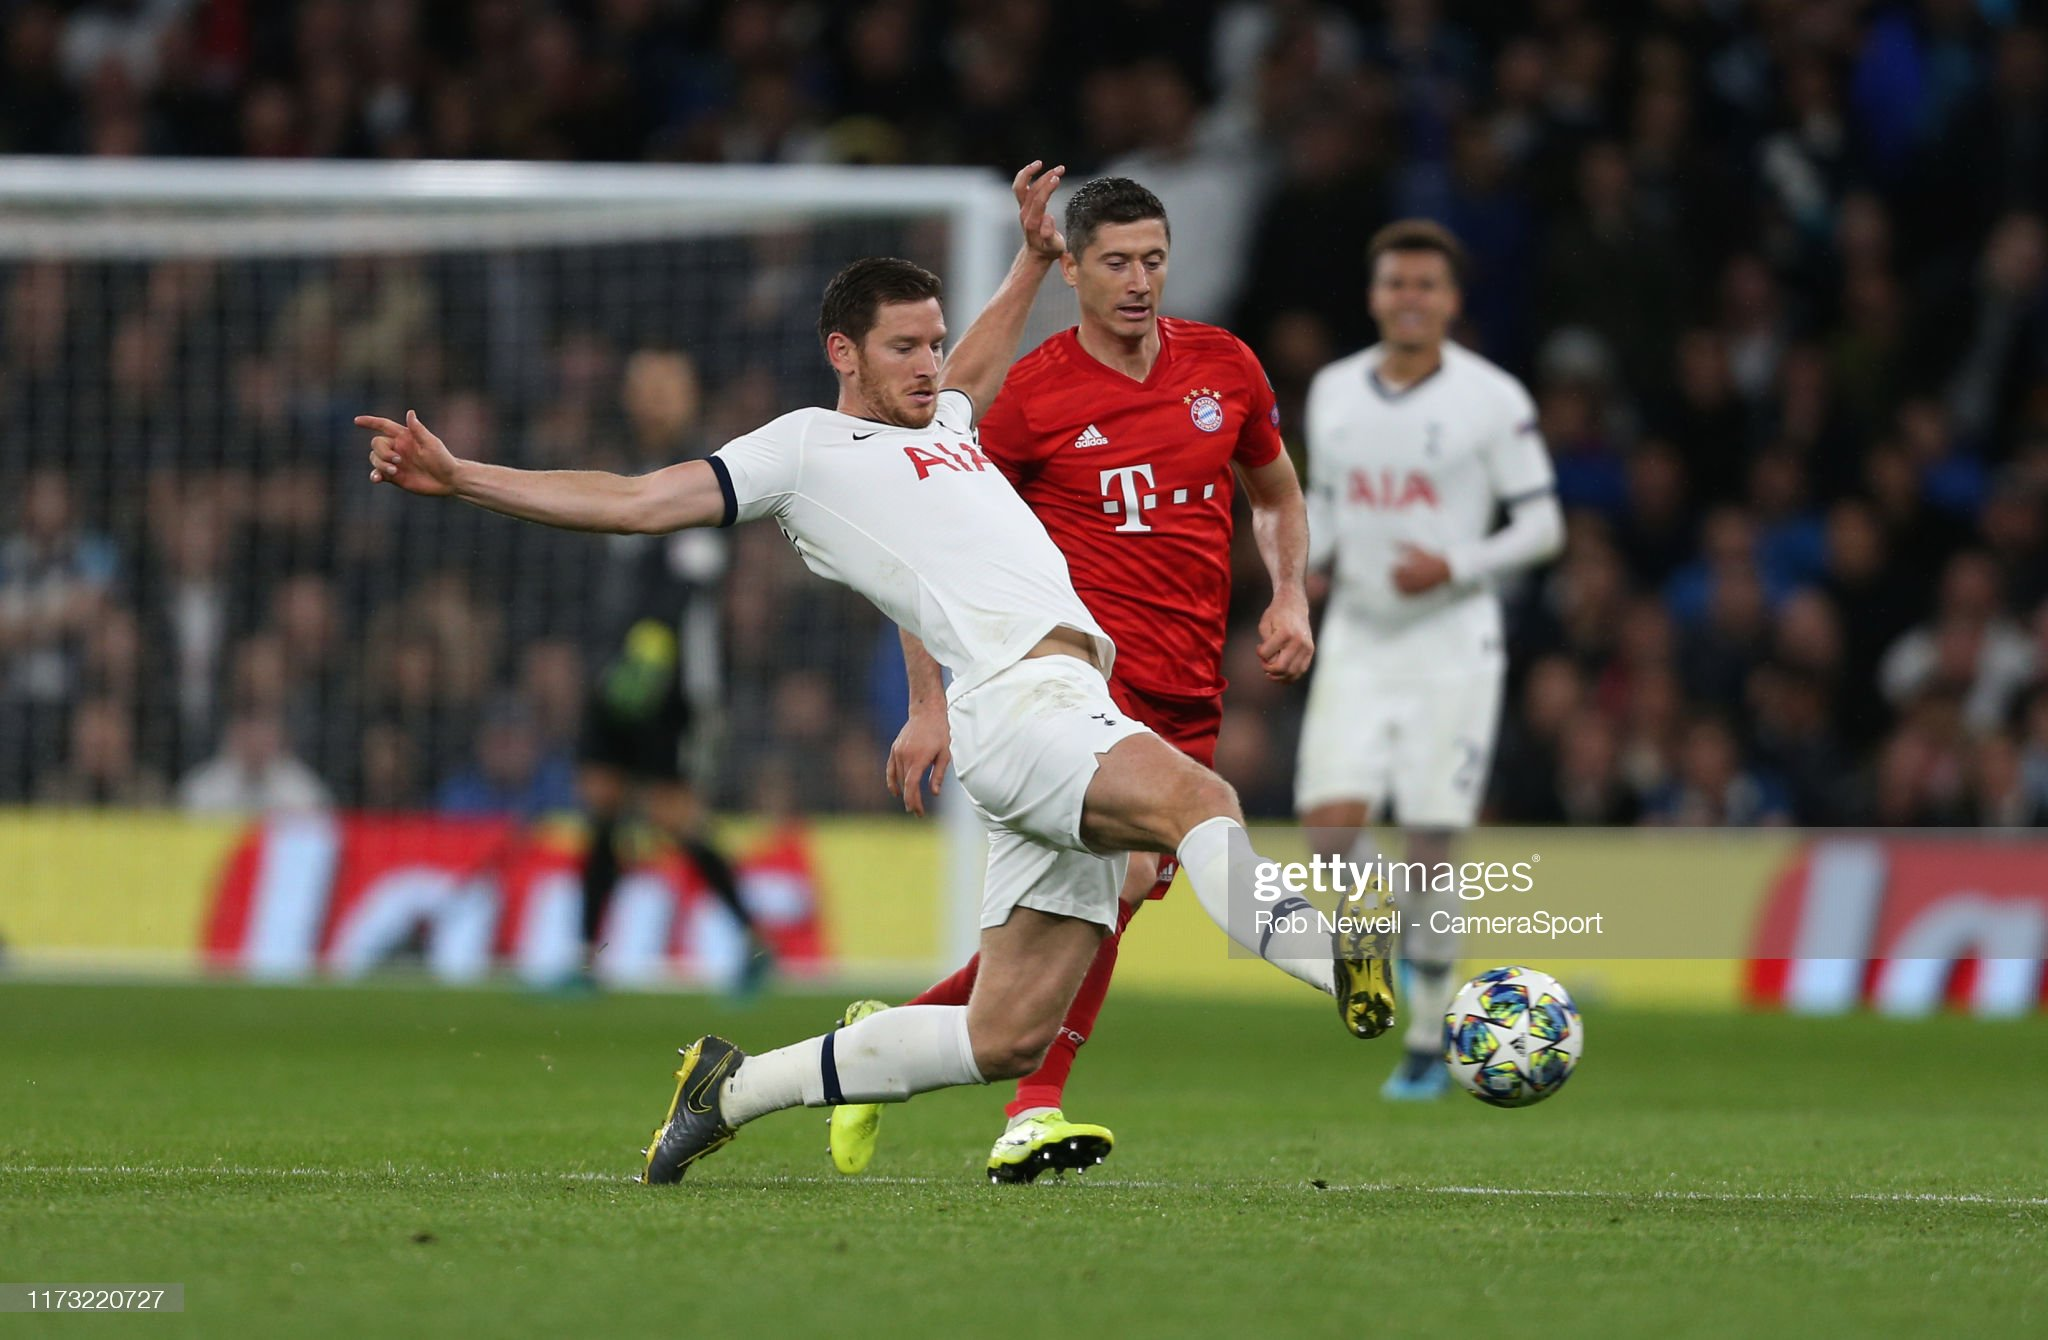 Bayern Munich v Tottenham preview, prediction and odds